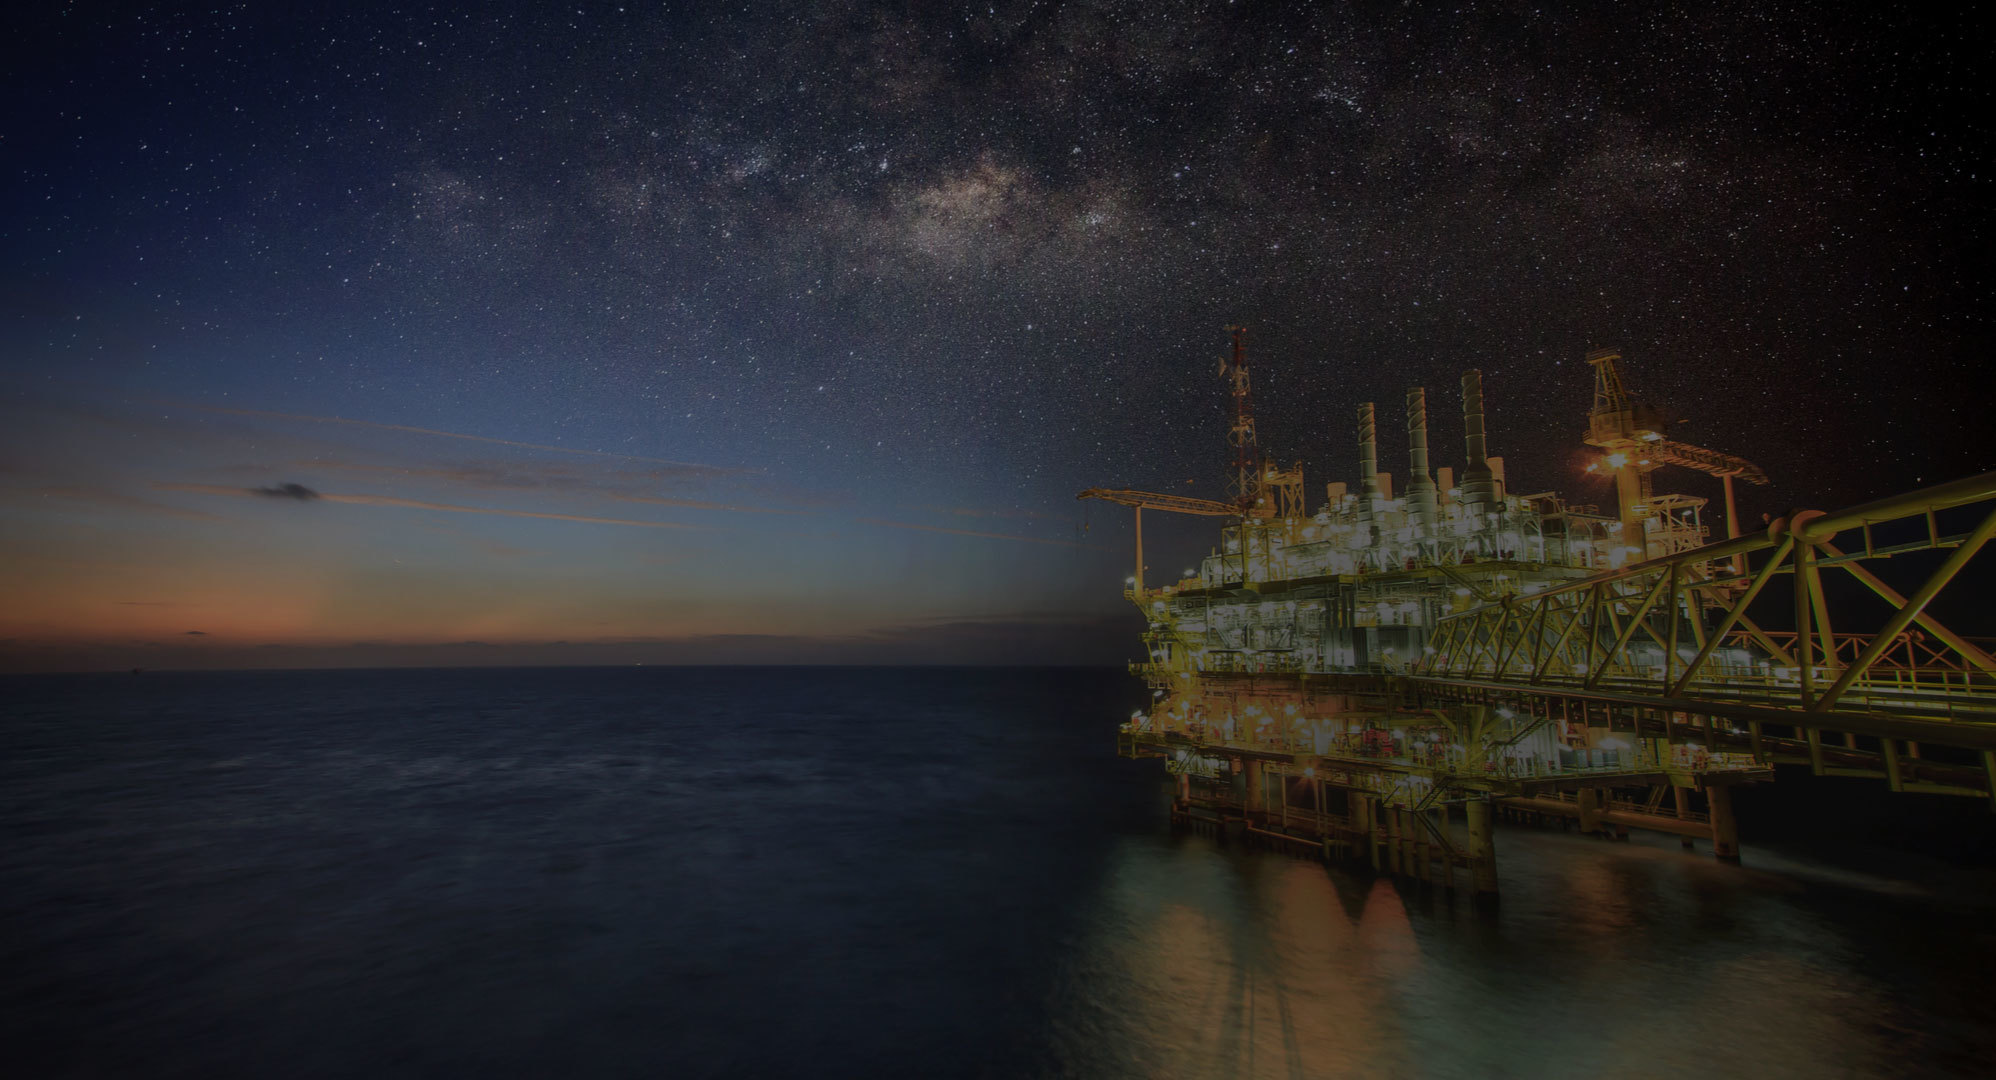 offshore-oil-rig-night